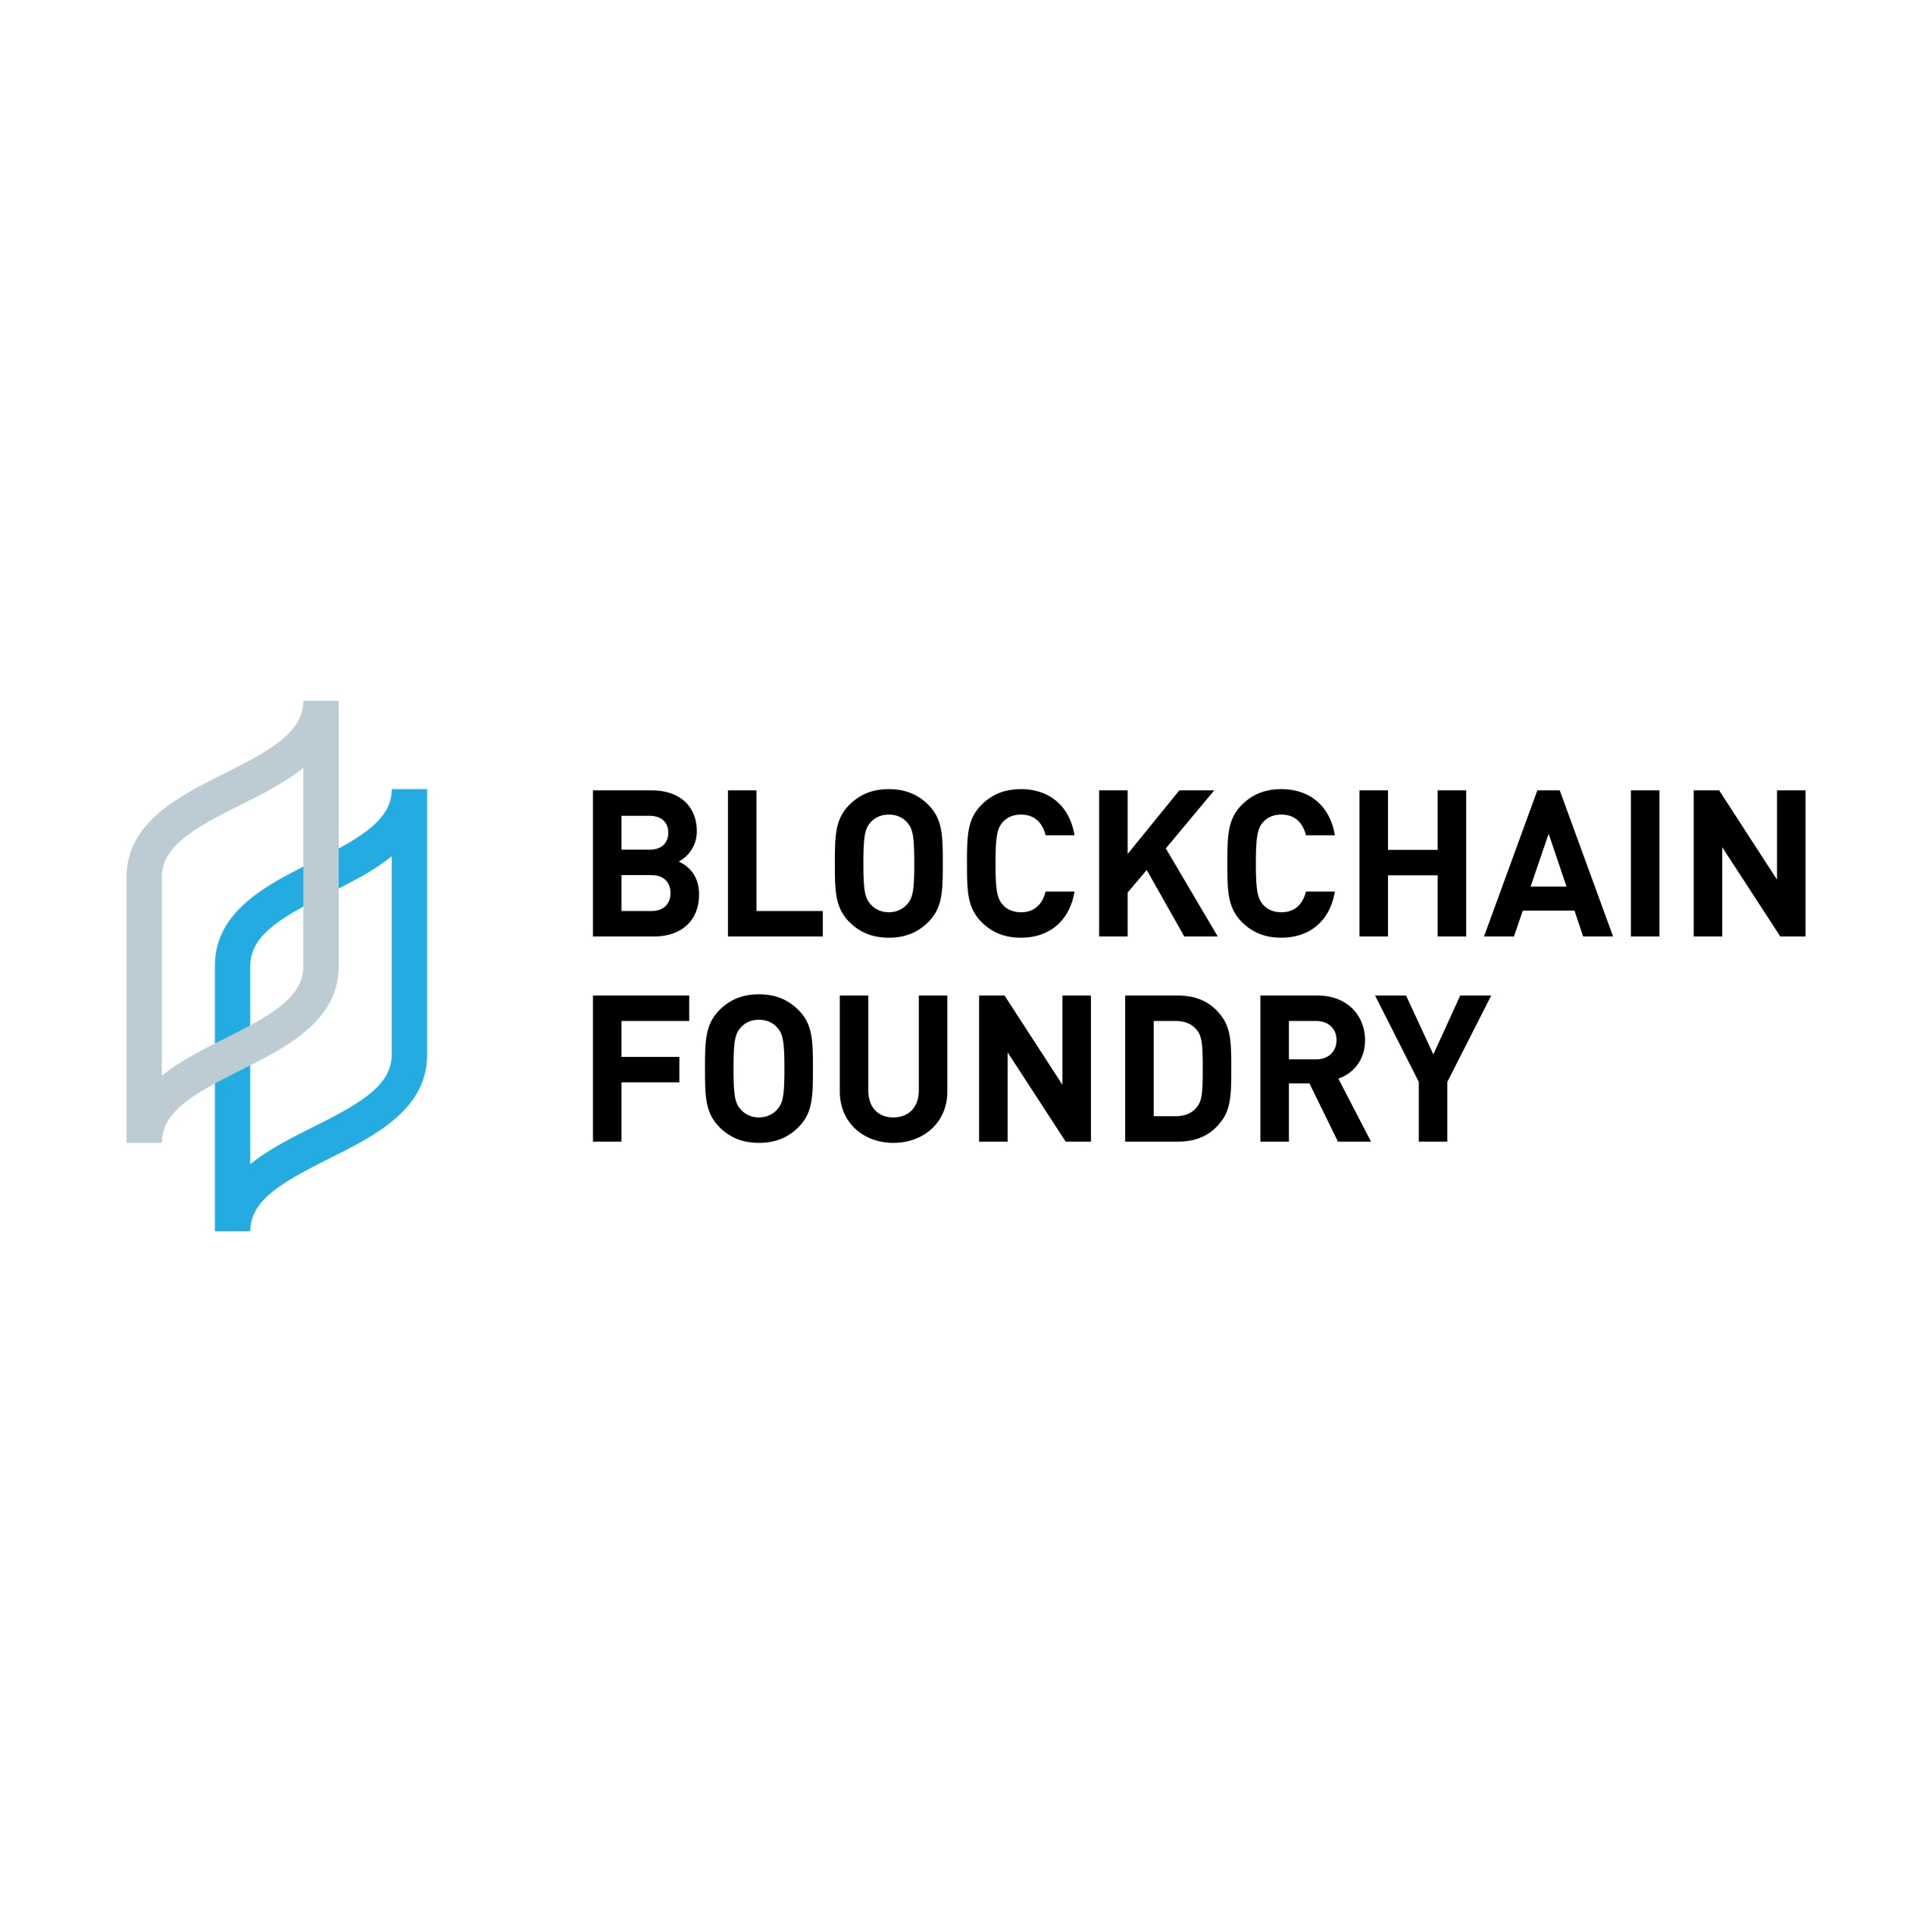 Blockchain Foundry Announces Phase 2 Blockchain Development Agreement with GDPR Compliance Solution Provider